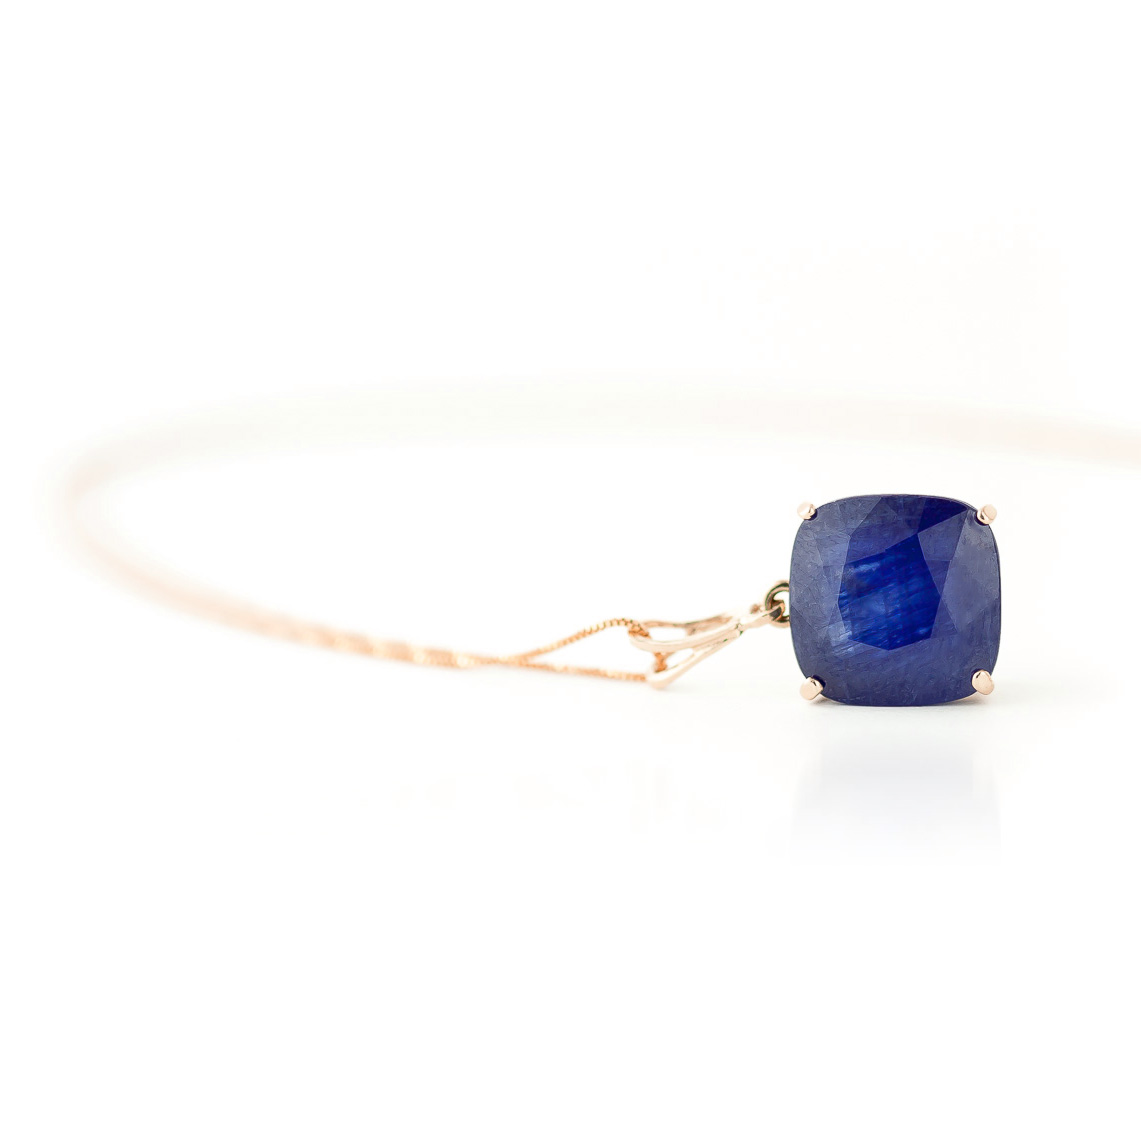 Sapphire Rococo Pendant Necklace 4.83ct in 9ct Rose Gold